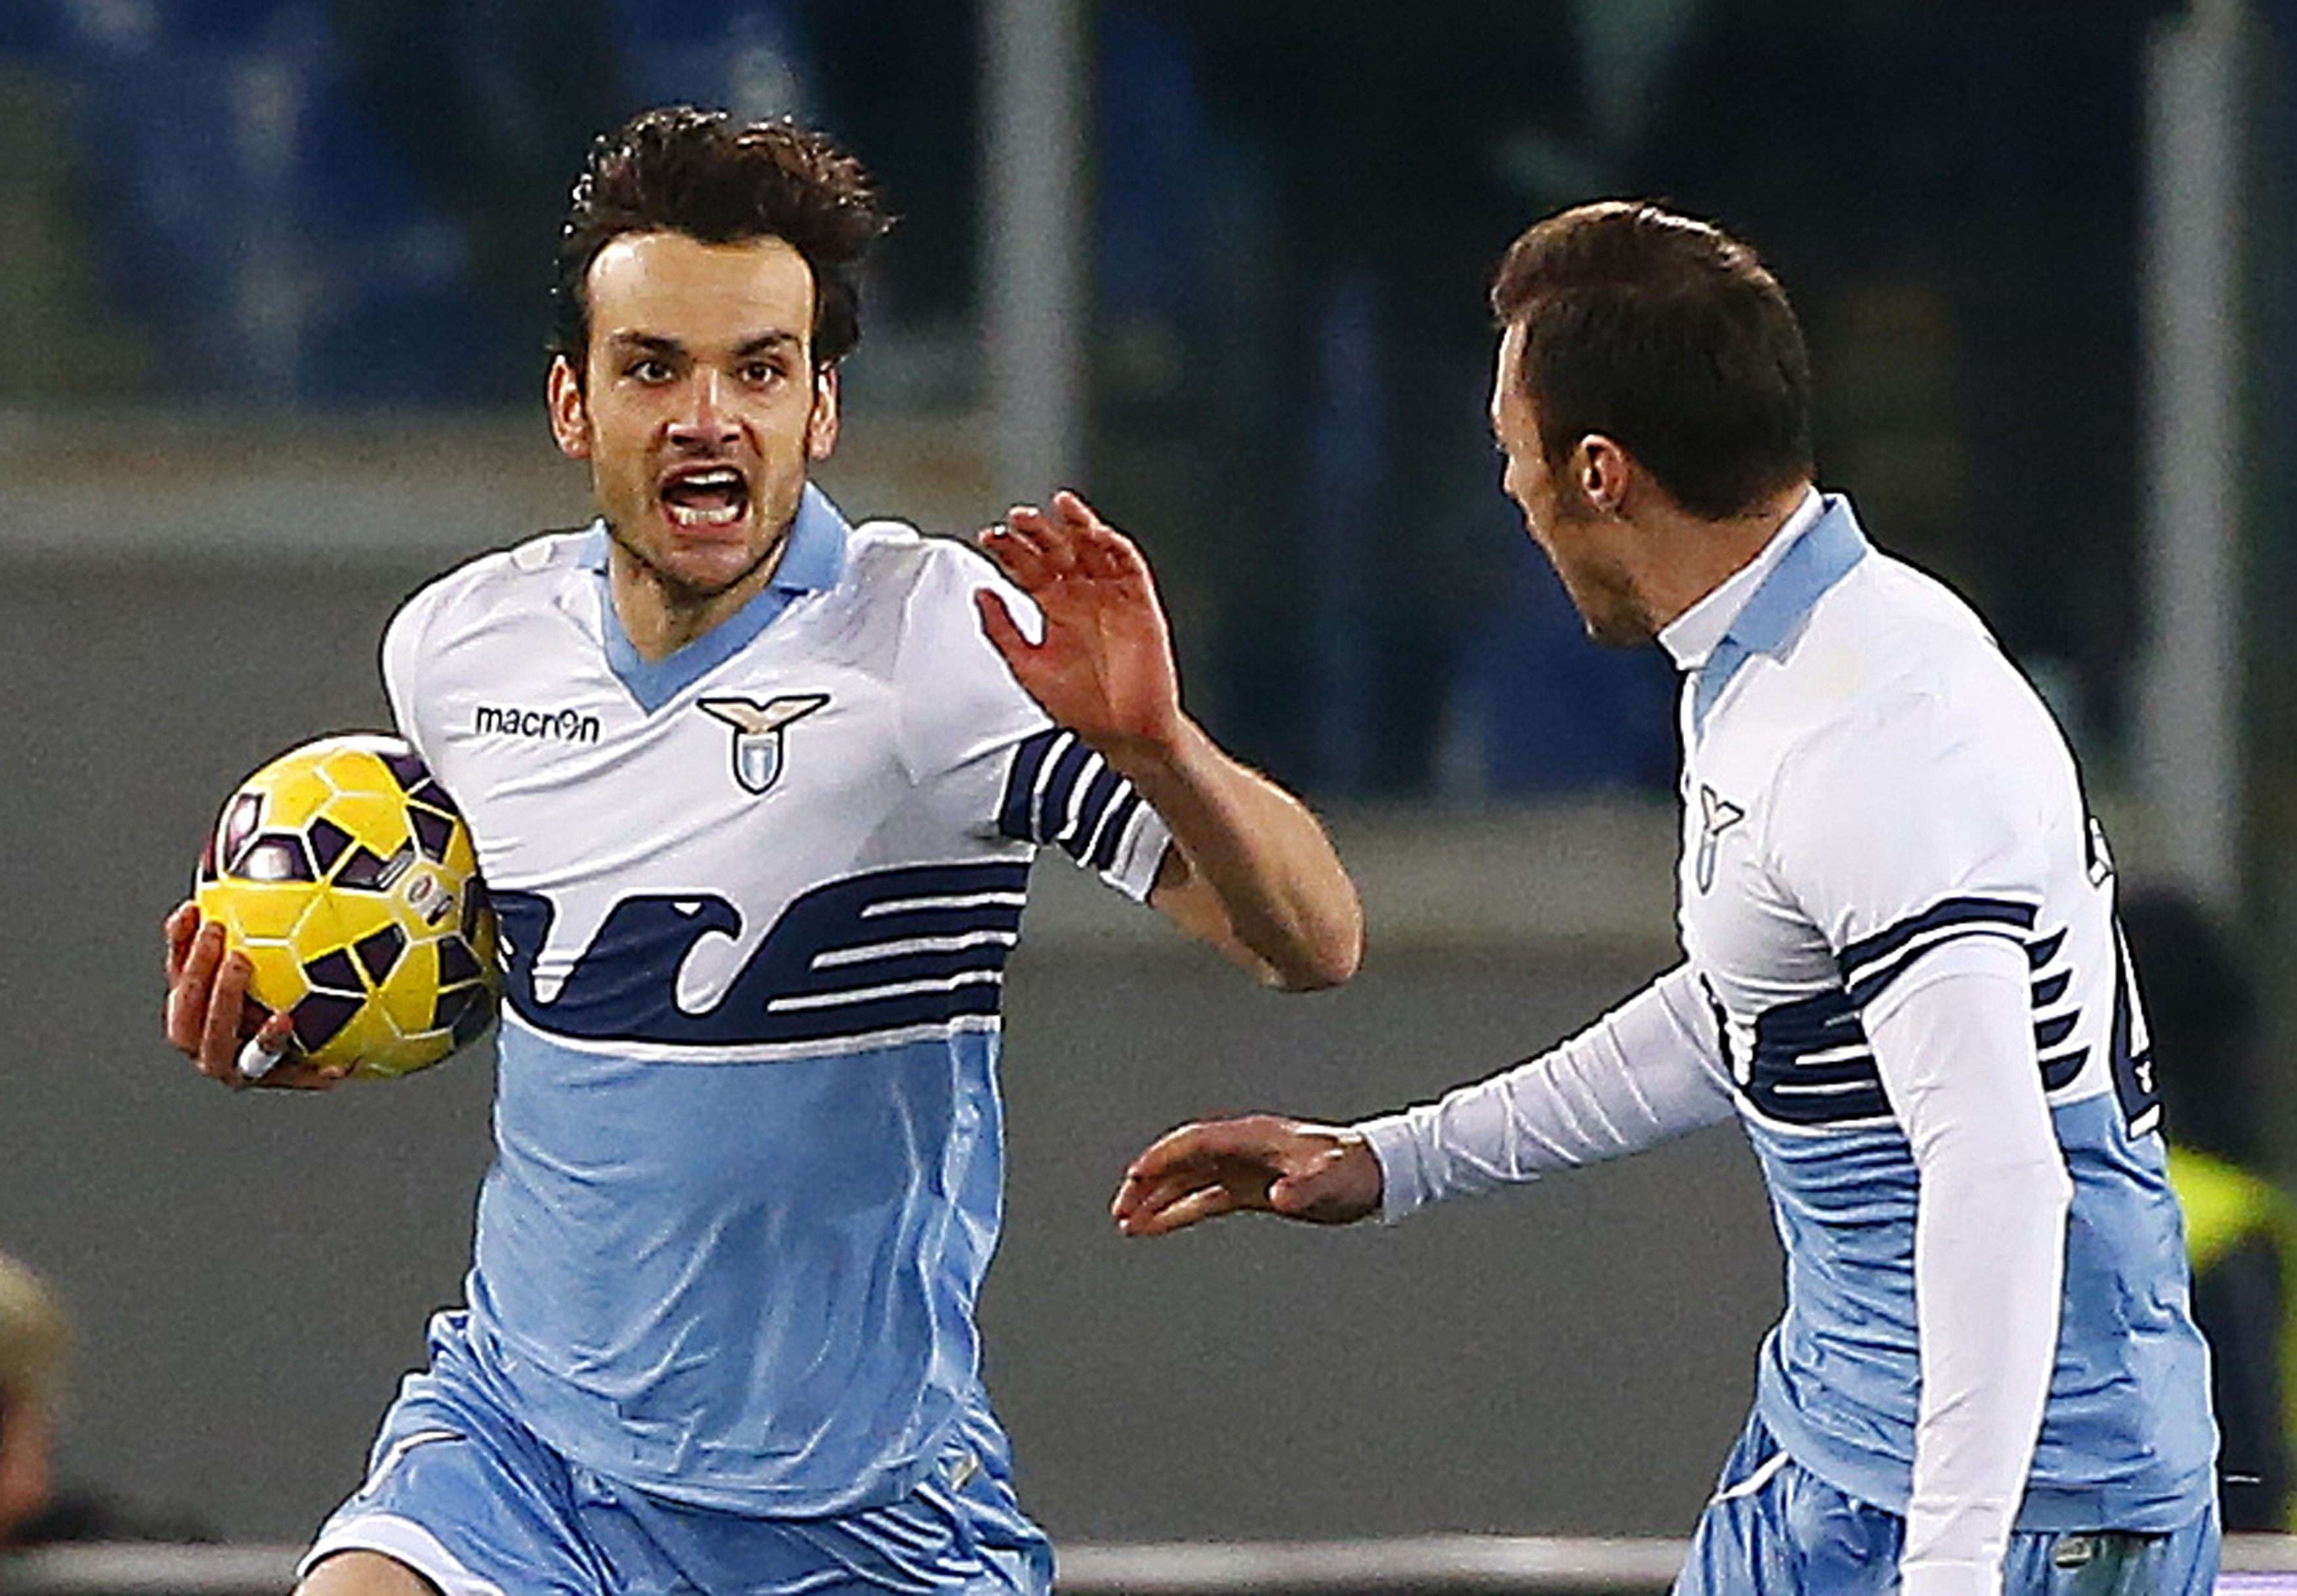 Lazio's Marco Parolo (L) celebrates after scoring against AC Milan during their Italian Serie A soccer match at the Olympic stadium in Rome January 24, 2015. REUTERS/Tony Gentile (ITALY - Tags: SPORT SOCCER) Foto: TONY GENTILE/REUTERS